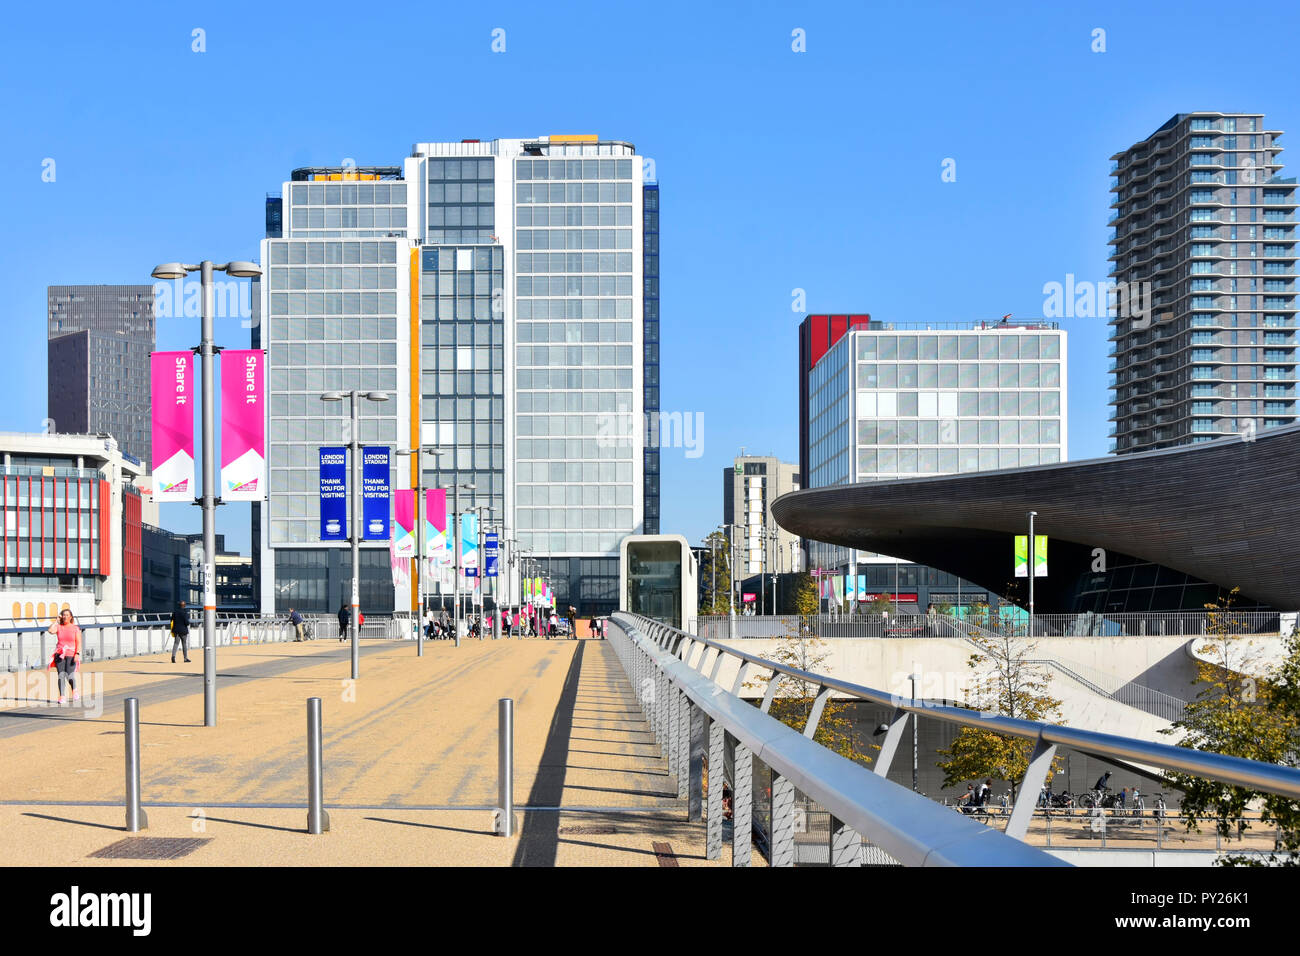 Changing urban landscape & skyline development of office buildings in International Quarter at Westfield in Stratford City & Olympic Park London UK - Stock Image